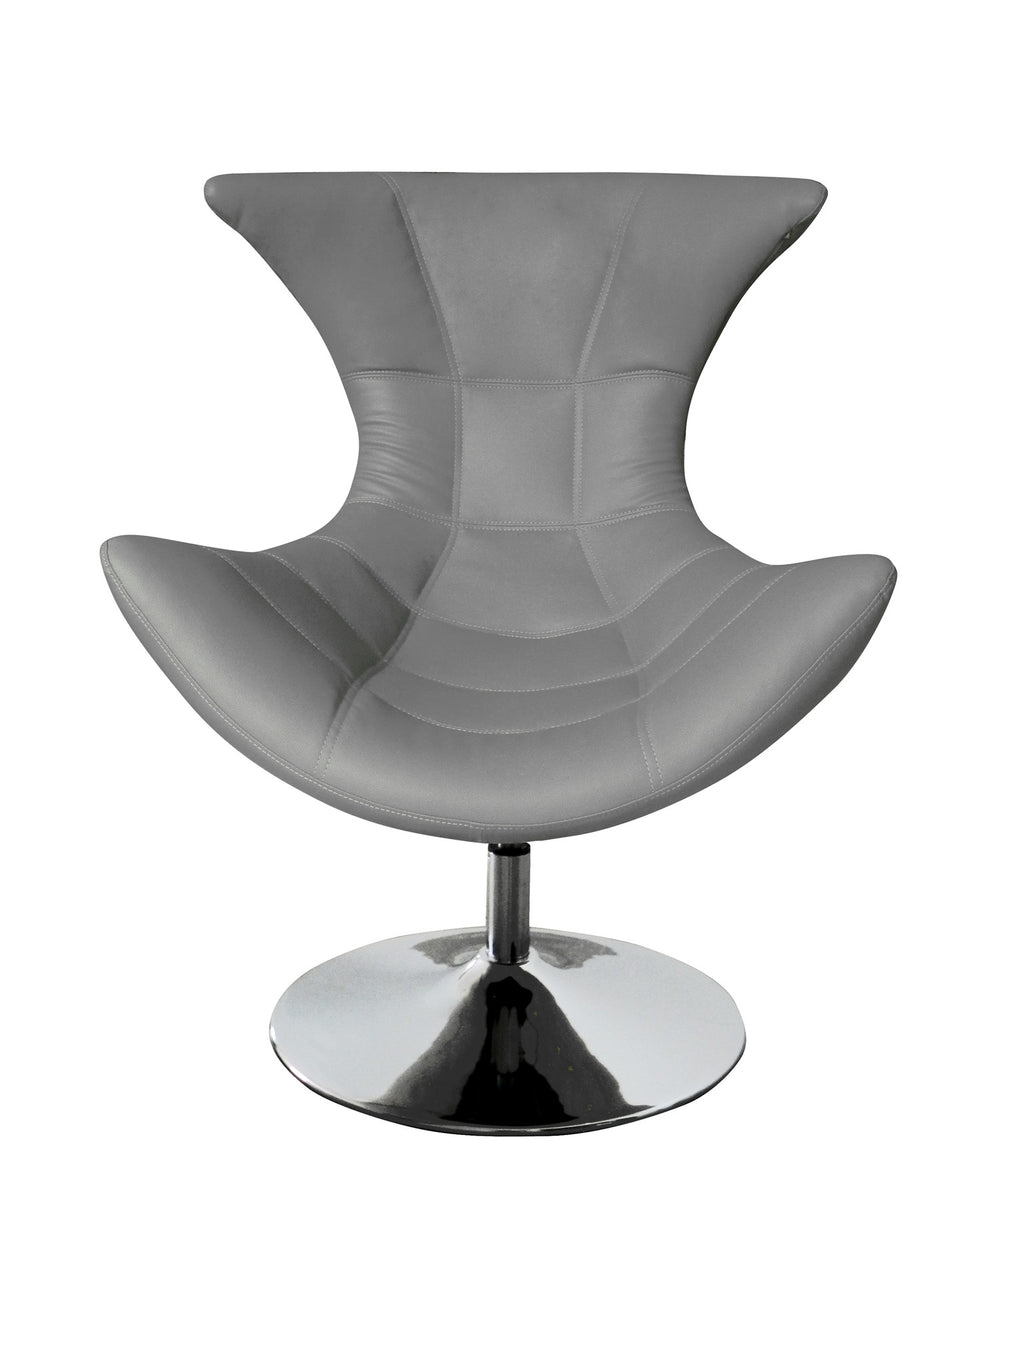 Charlotte Swivel Chair, Gray faux leather, Chrome base.